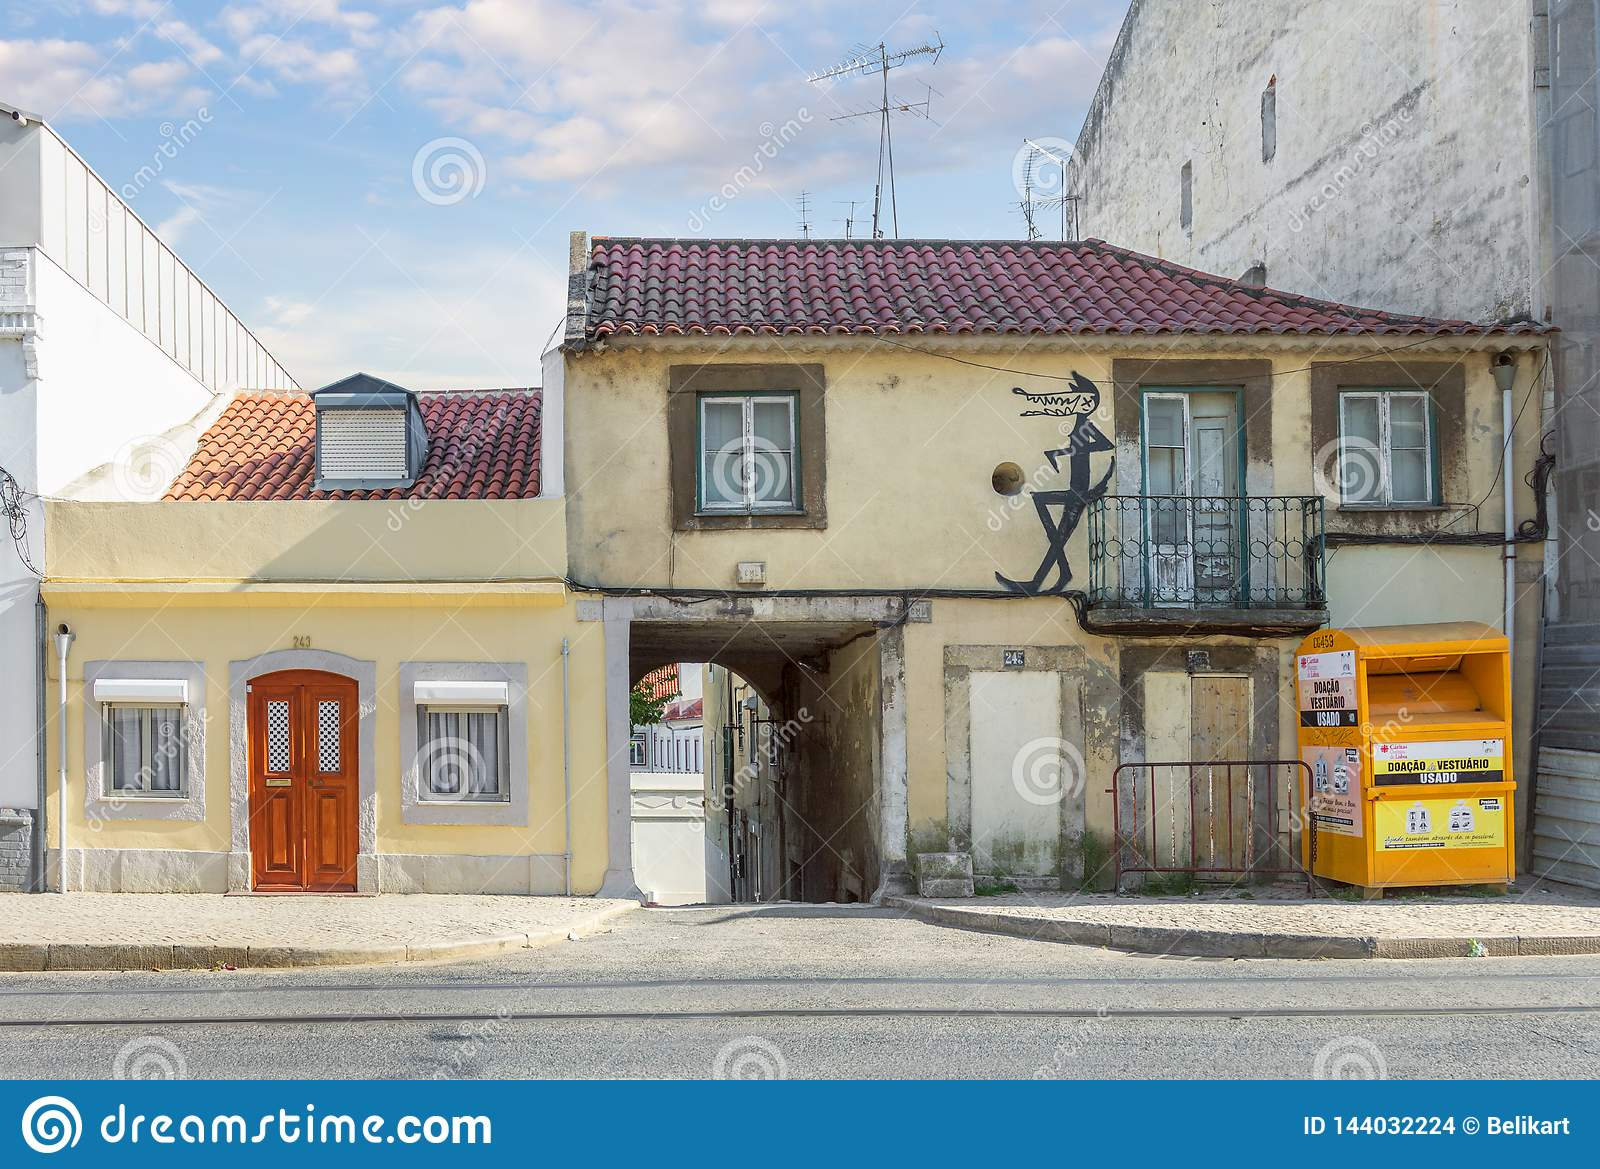 Old house in Lisbon. Portugal